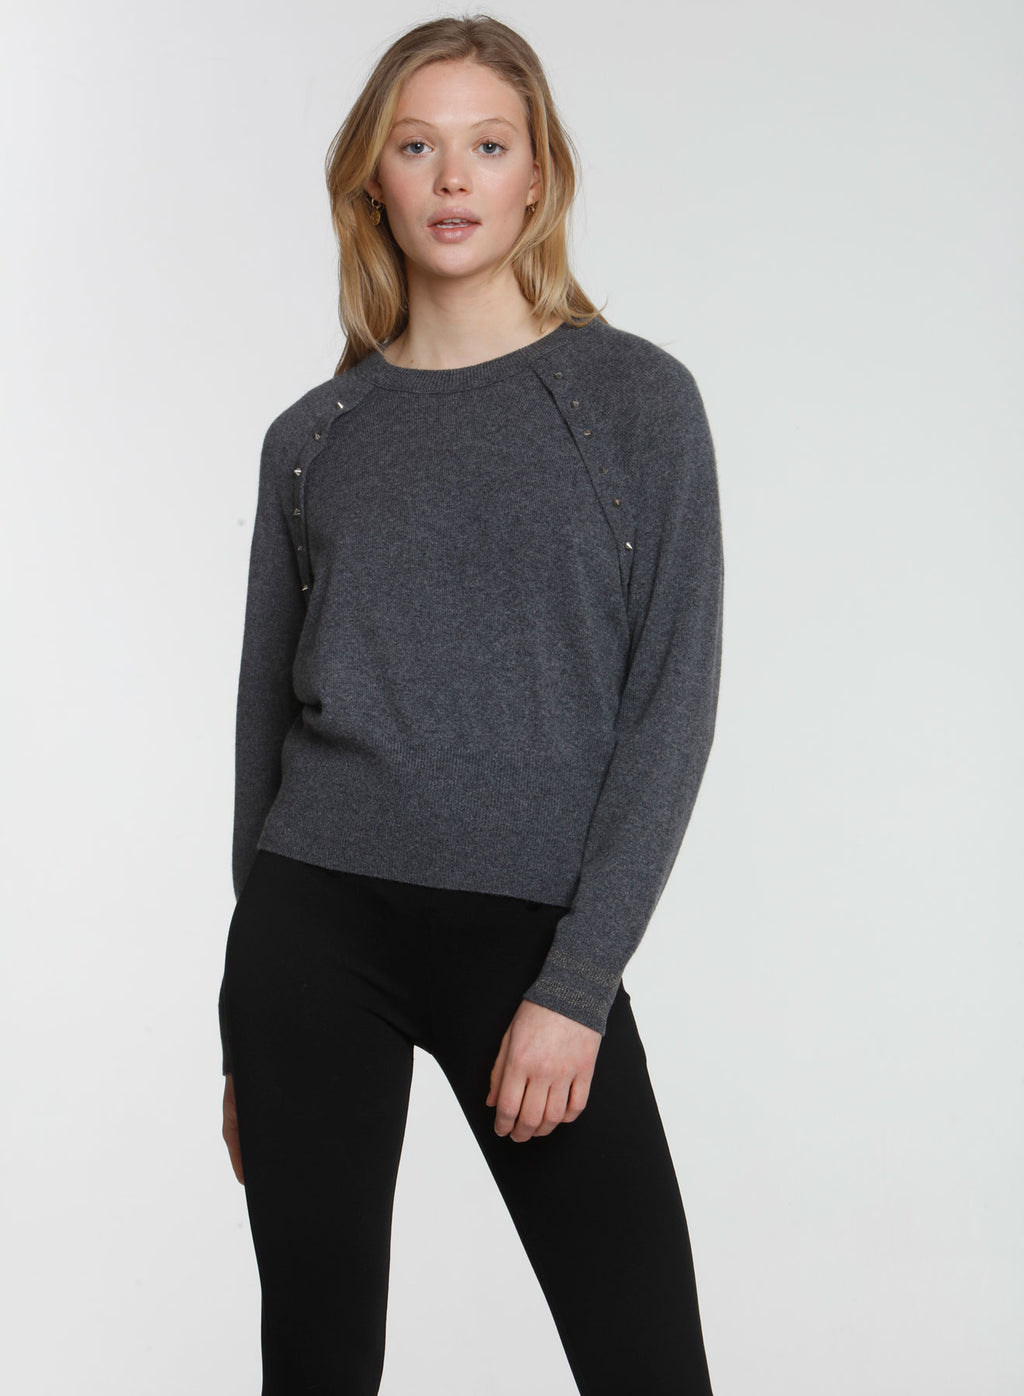 Studded 80s Dolman - Charcoal